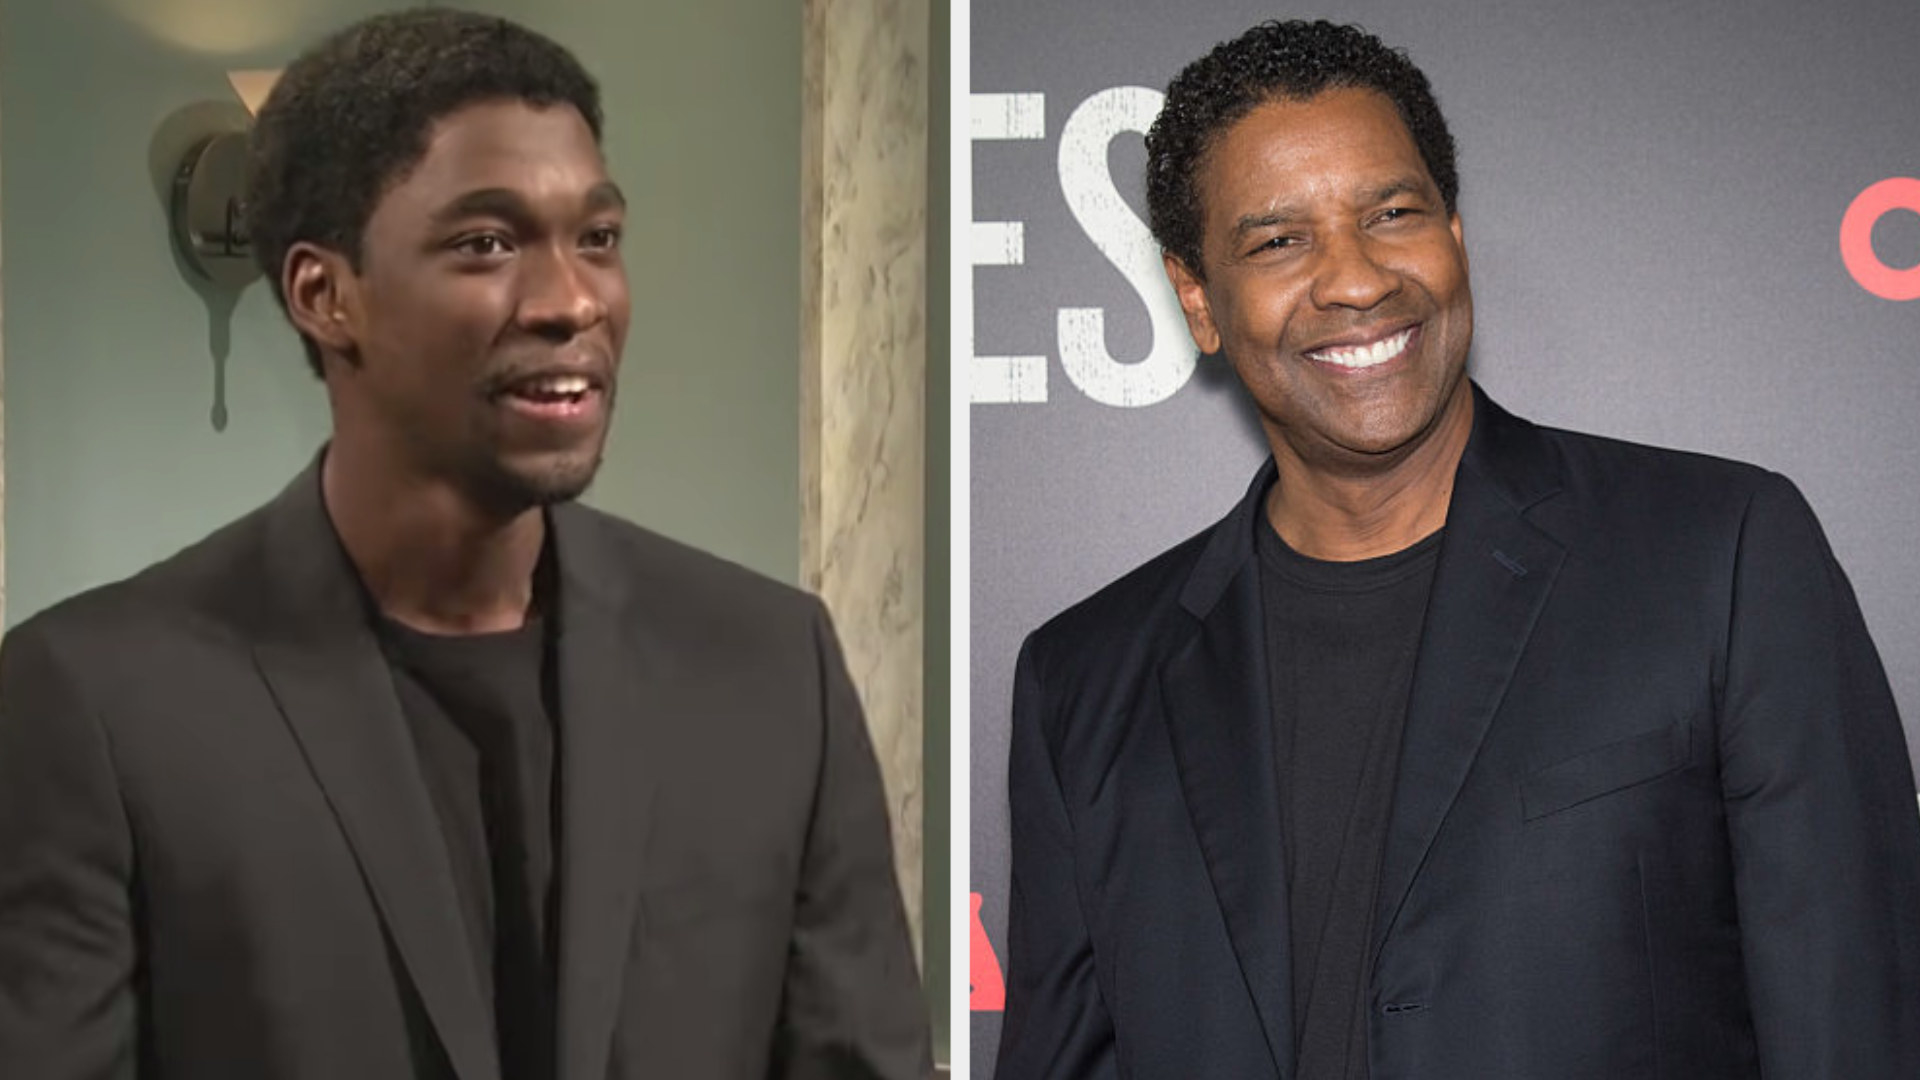 Jay Pharoah dressed in a black shirt and suit jacket side by side with Denzel wearing the same thing